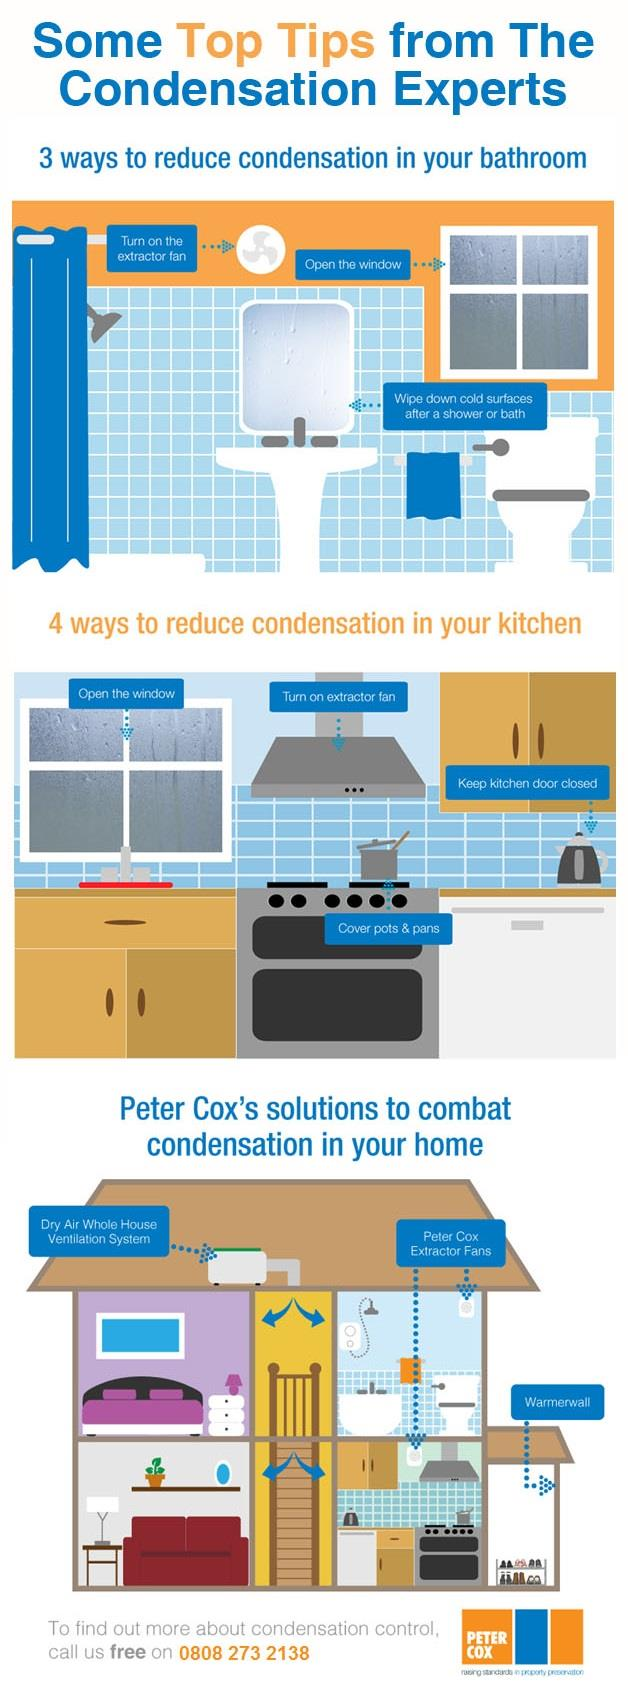 Tips To Reduce Condensation From The Experts At Peter Cox